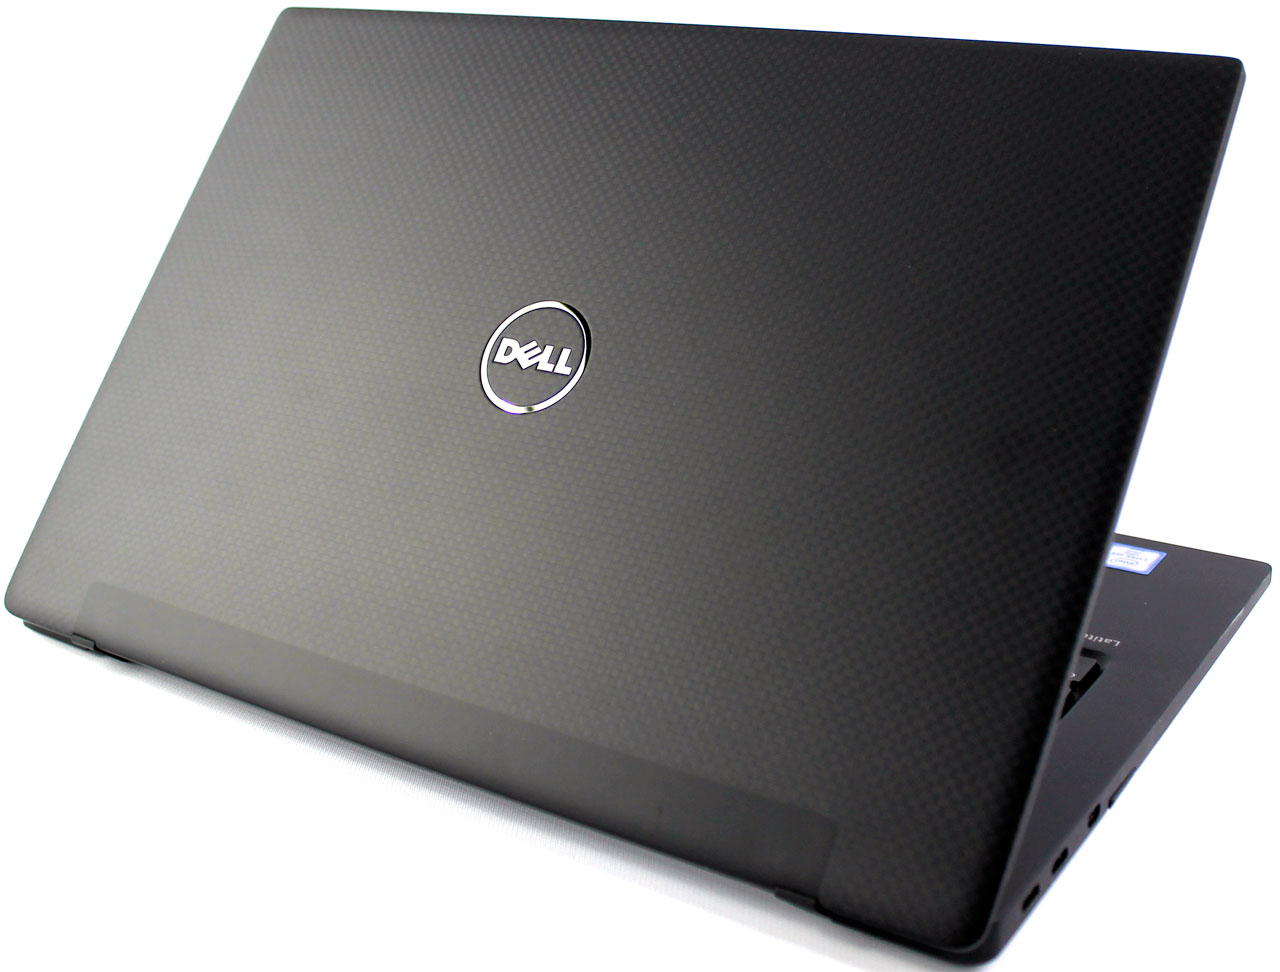 Dell Latitude 13 7370 Review: A Sleek Business-Class Ultrabook